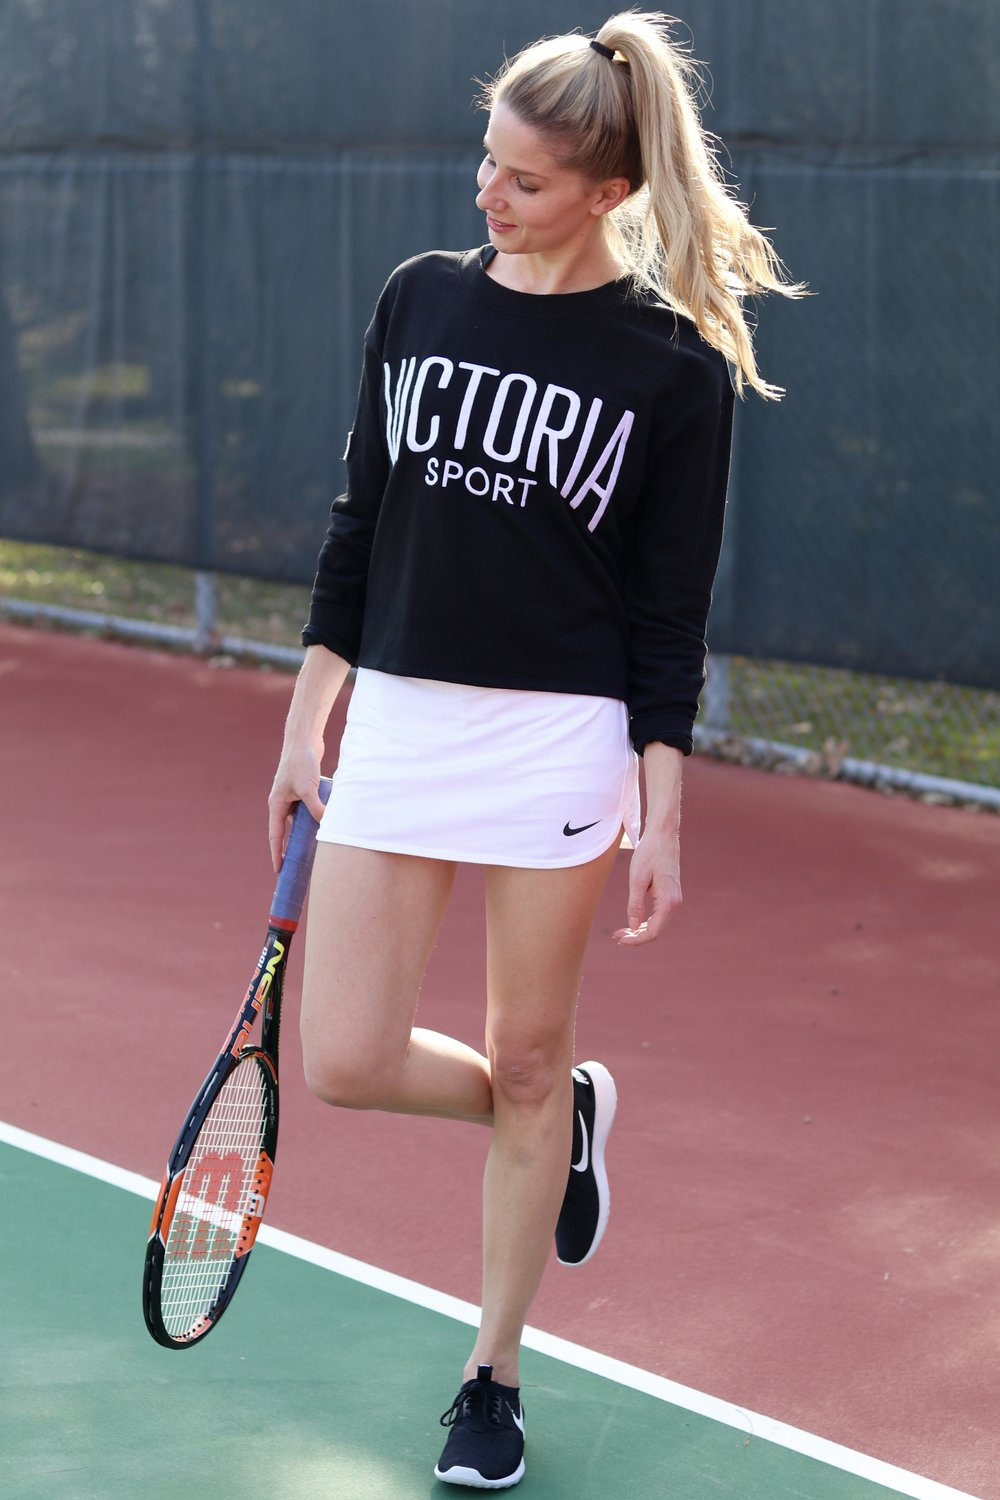 gilt edge | tennis outfit